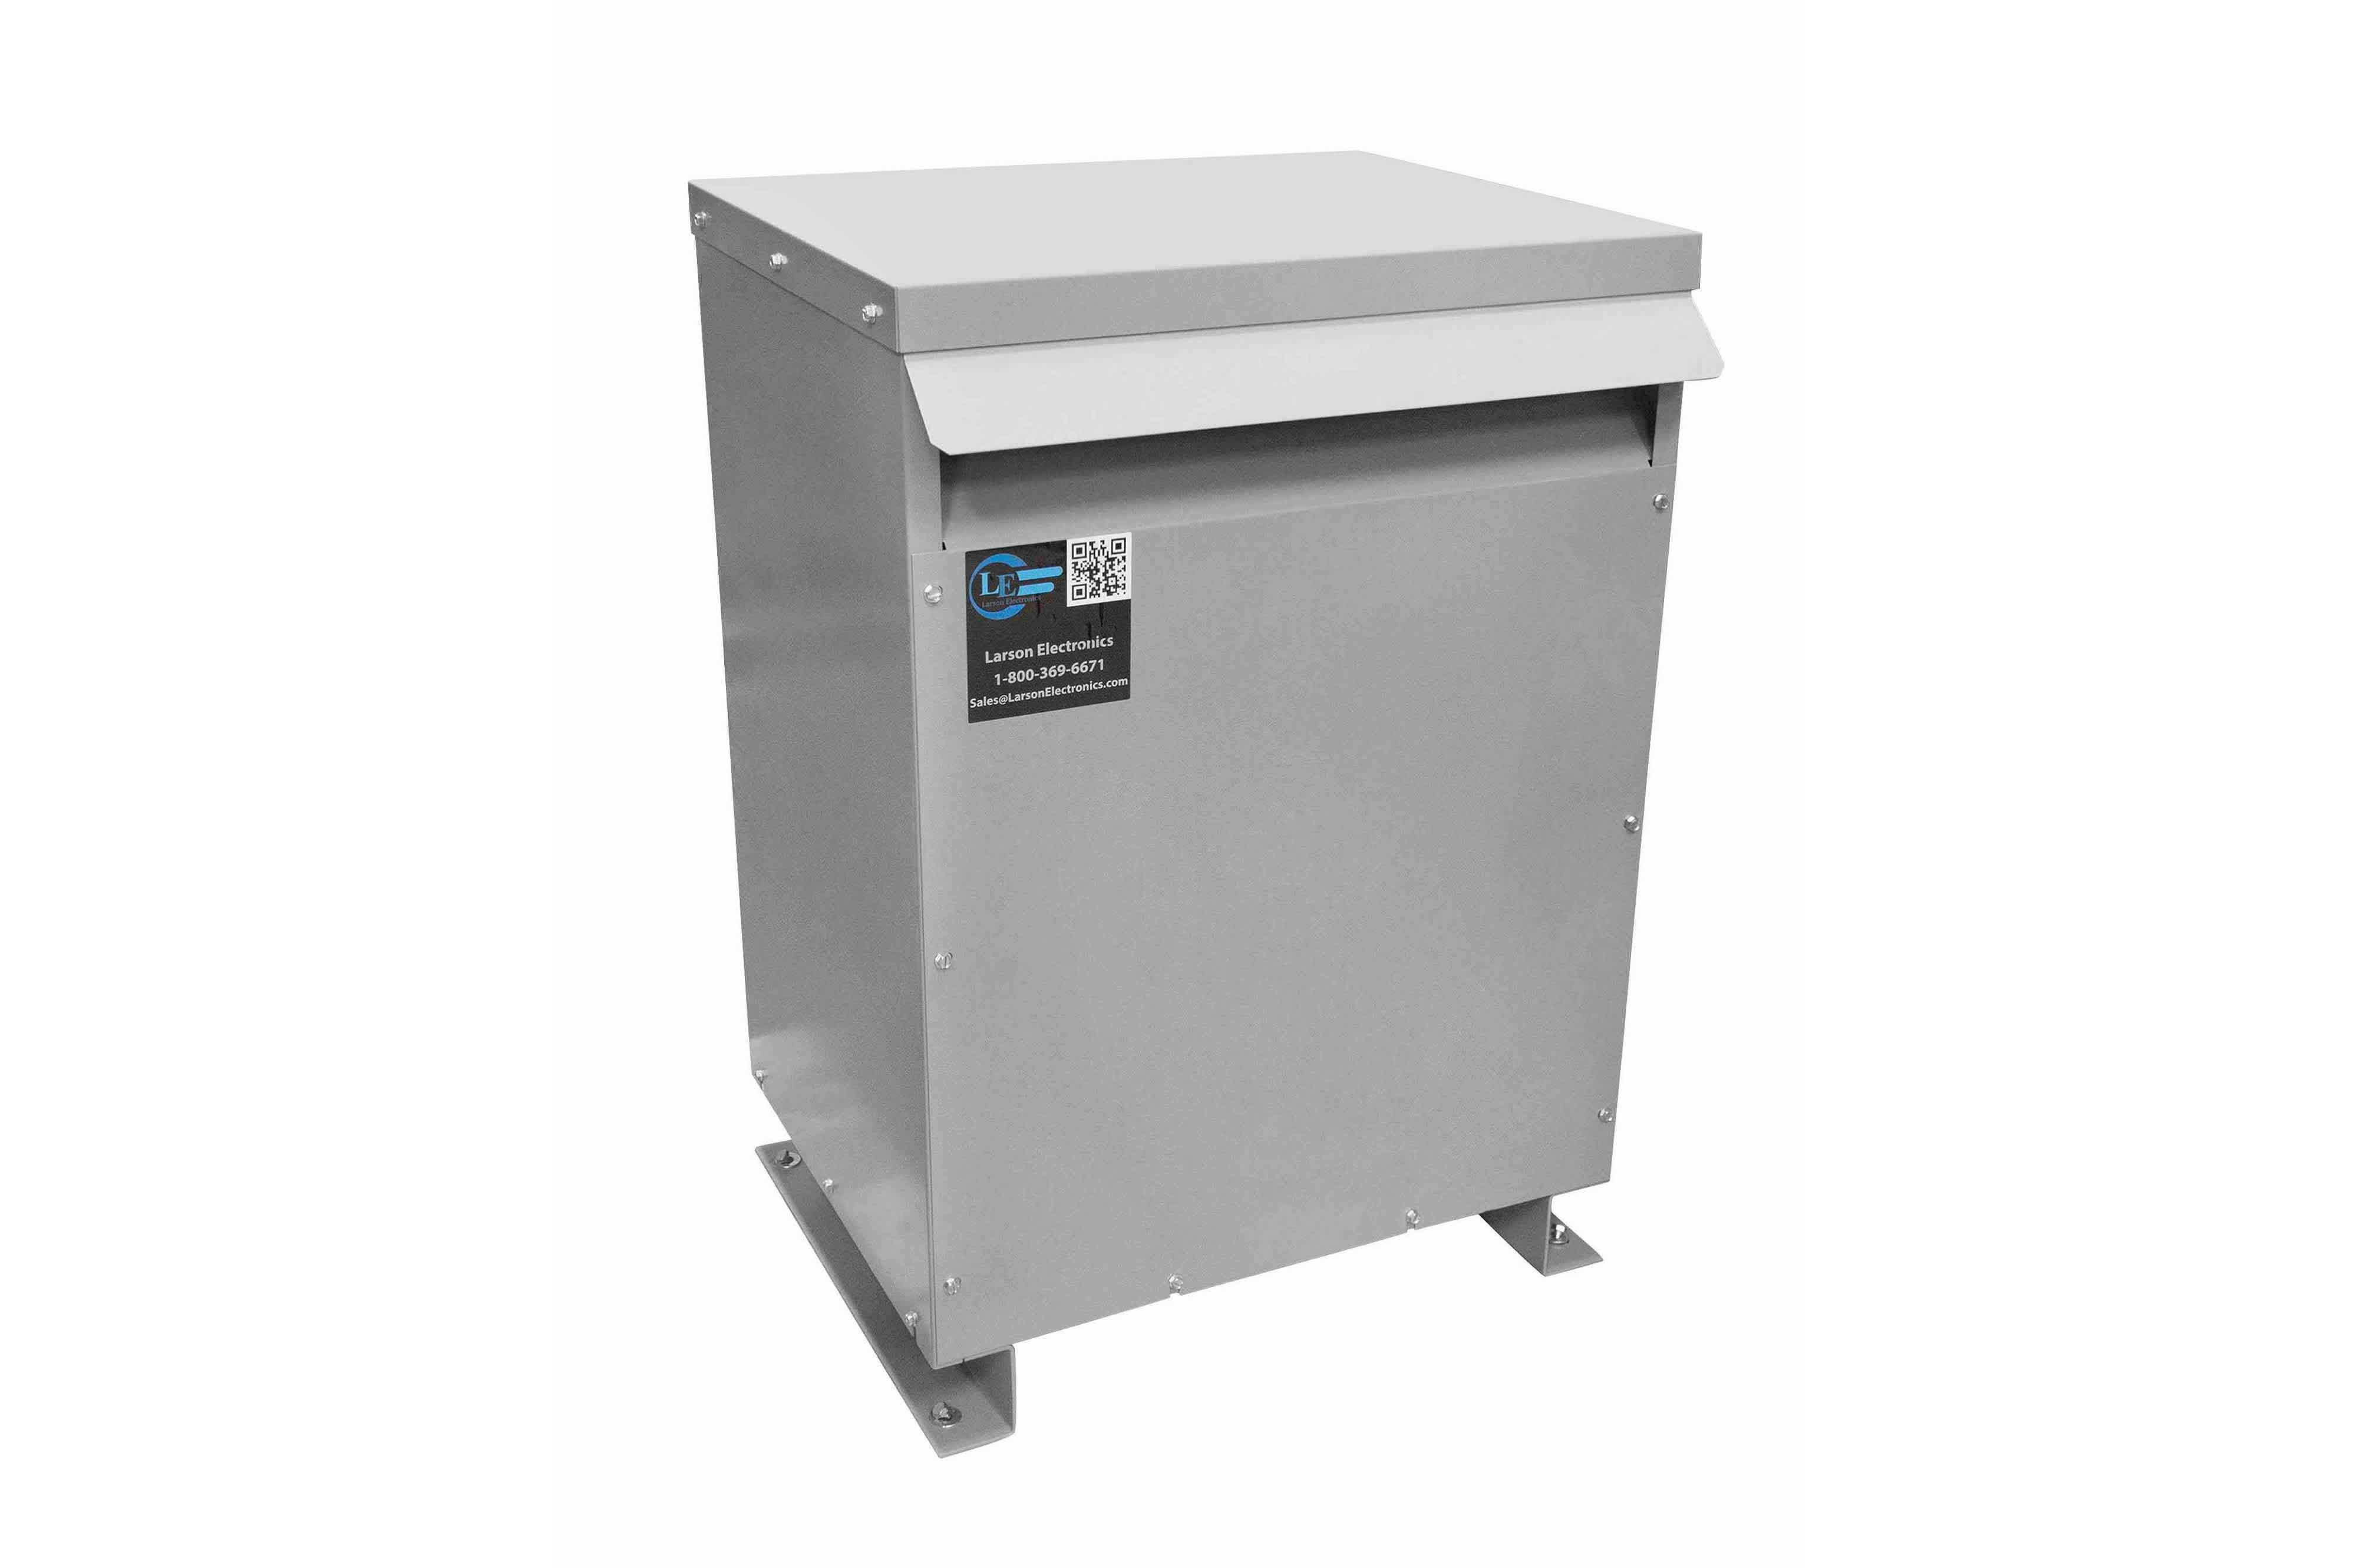 27 kVA 3PH Isolation Transformer, 575V Wye Primary, 480Y/277 Wye-N Secondary, N3R, Ventilated, 60 Hz